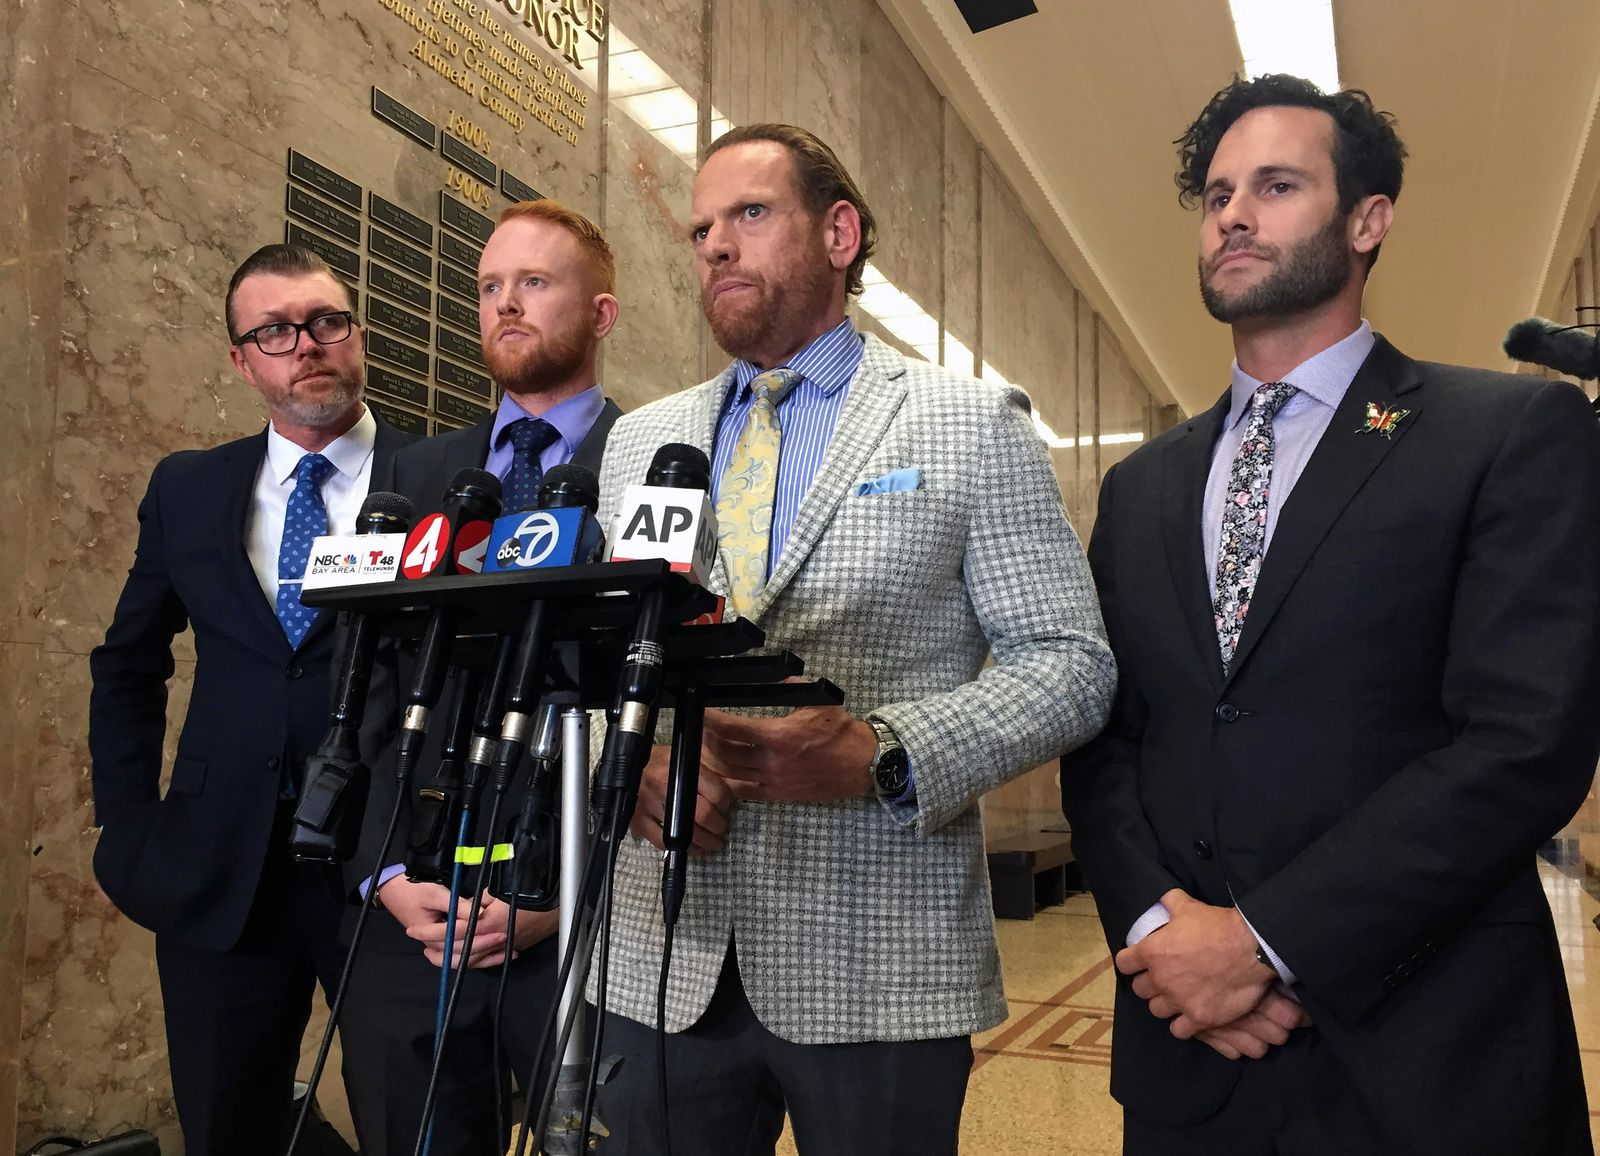 Curtis Briggs, second from right, the attorney for Max Harris, speaks at the courthouse in Oakland, Calif., Thursday, Sept. 5, 2019. A jury has acquitted Max Harris of involuntary manslaughter but couldn't reach a verdict for the leader of an artists' commune accused of turning a California warehouse into a cluttered maze that trapped 36 partygoers during a fast-moving fire. (AP Photo/D. Ross Cameron)